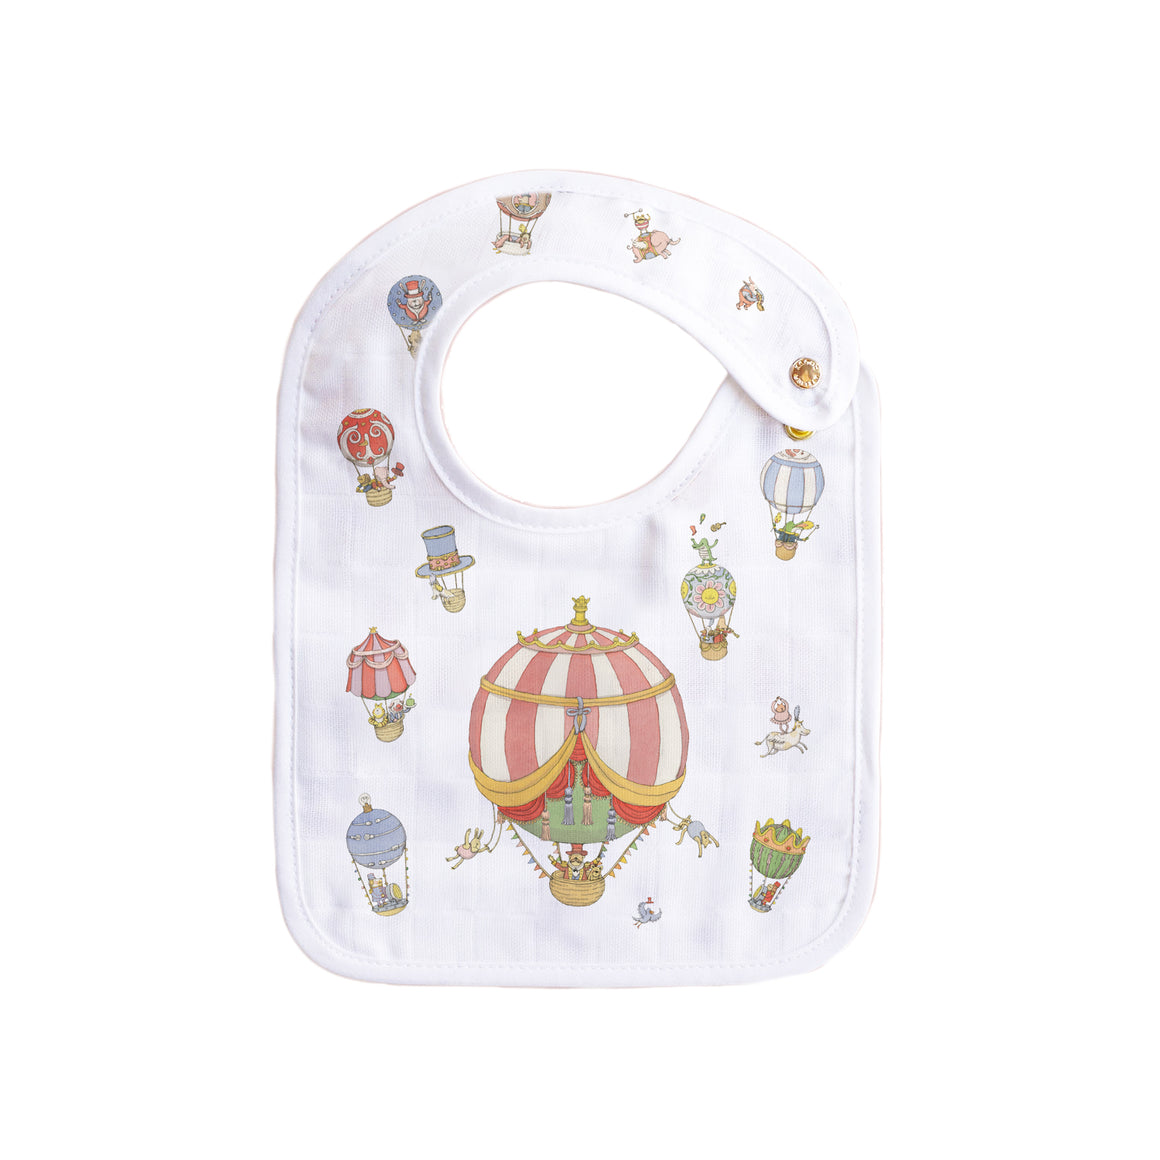 French Baby Bib - The Circus by Atelier Choux